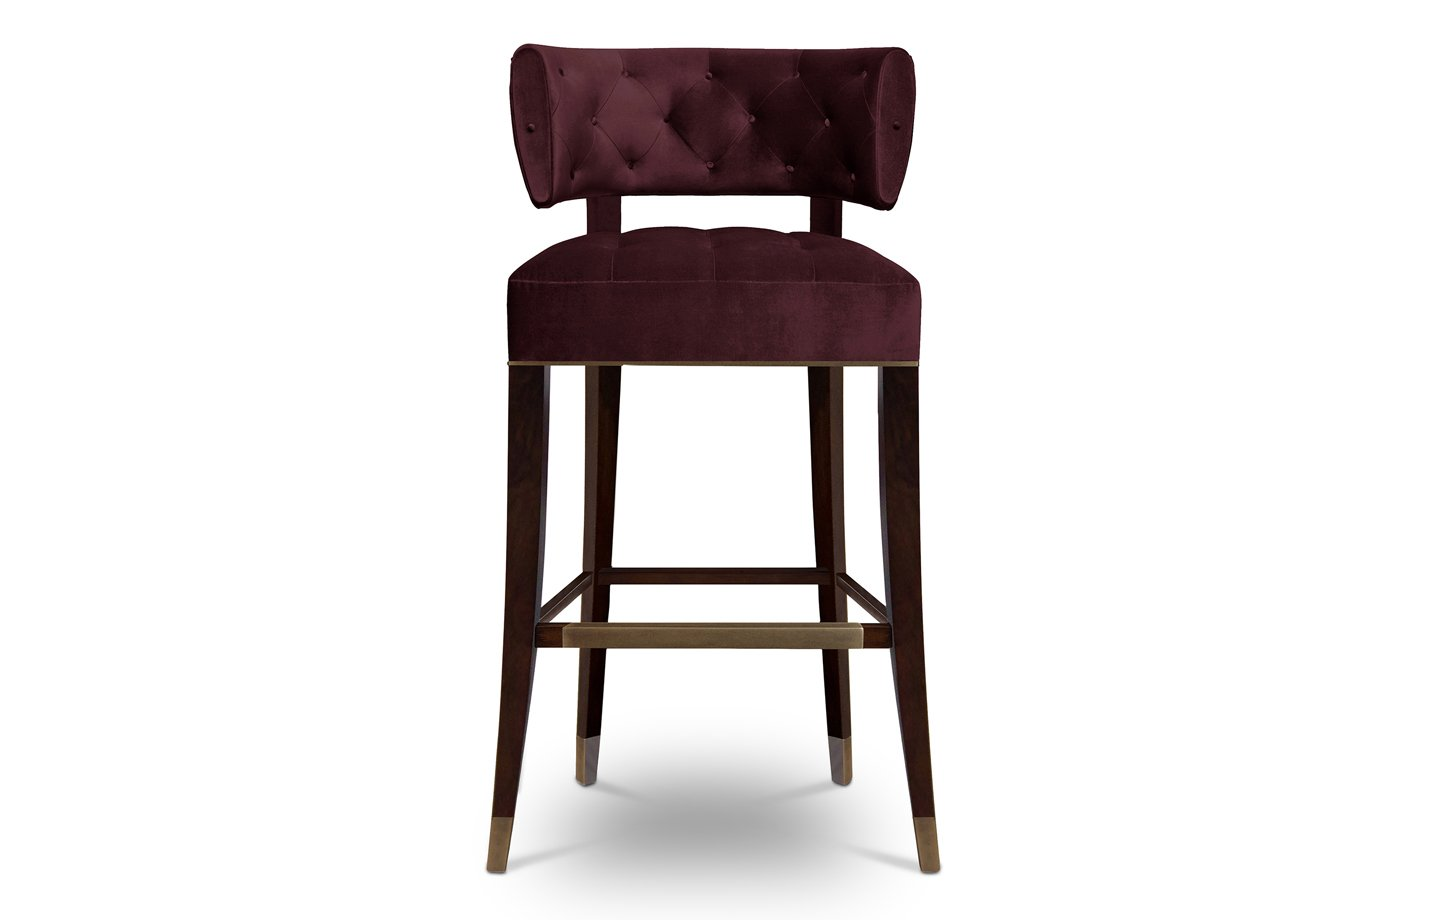 Zulu bar chair – Red